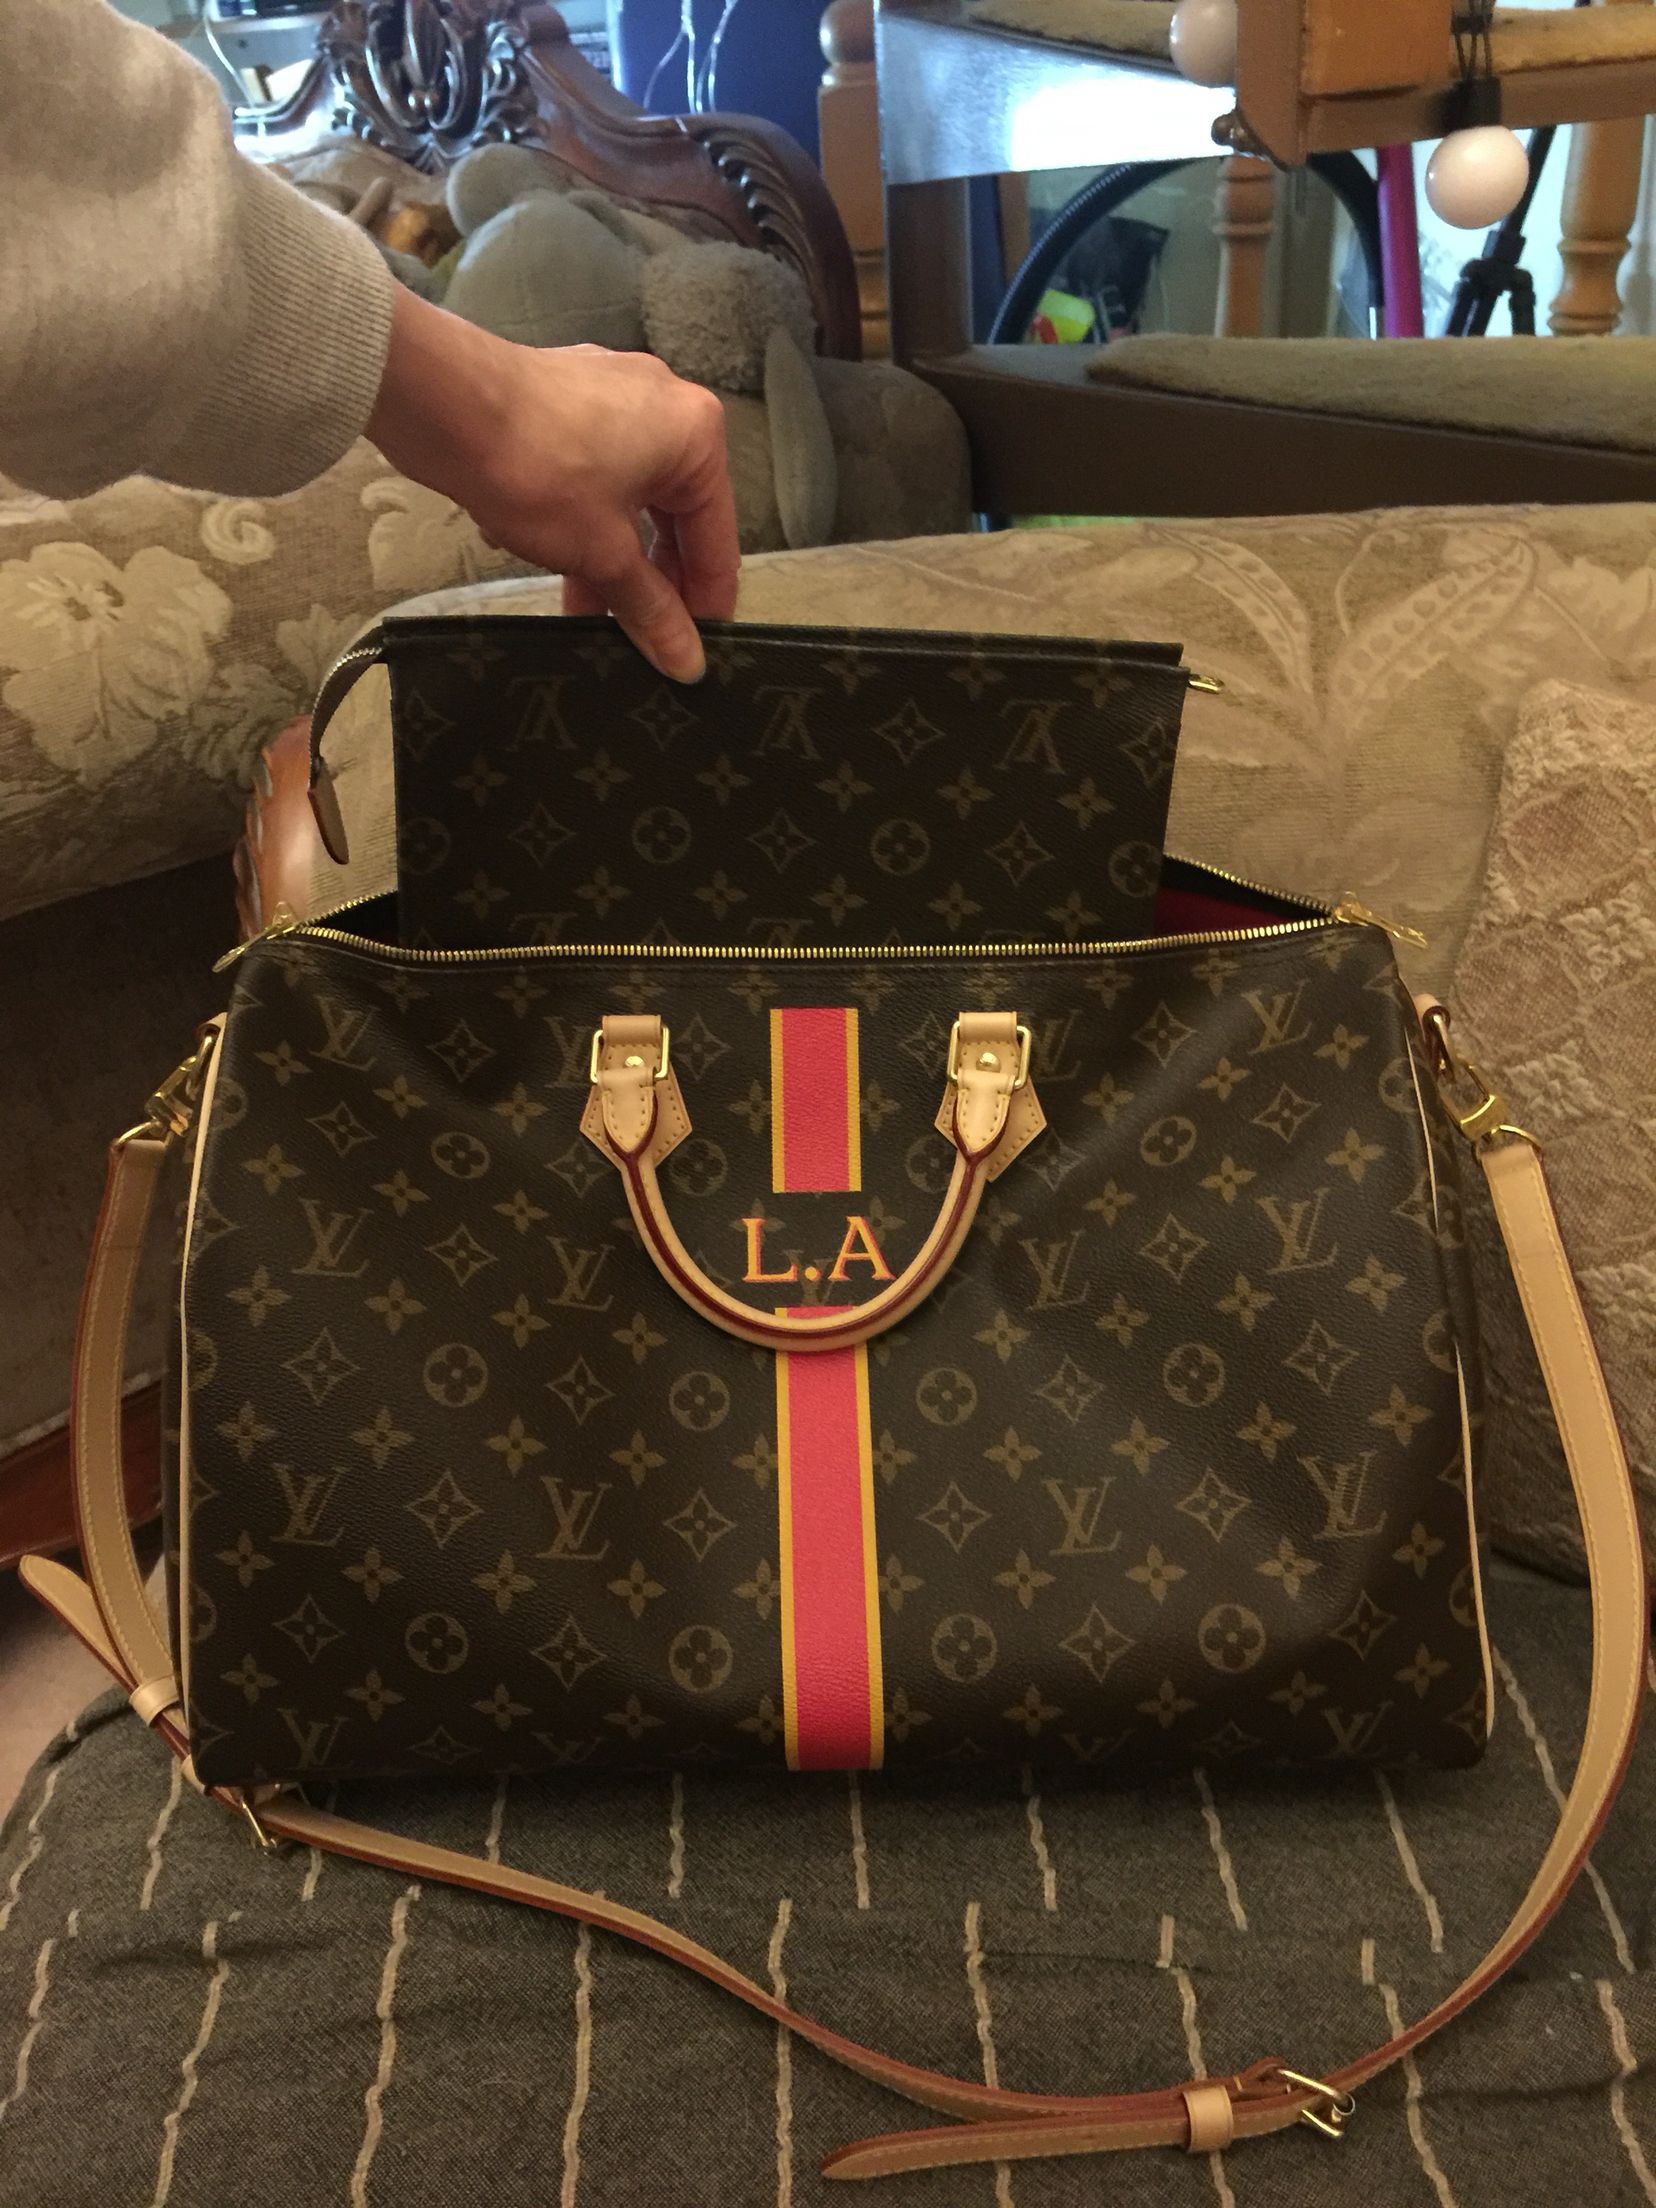 c20049b72 Louis Vuitton Speedy 40 Bandouliere bag and Toiletry pouch 26 ...